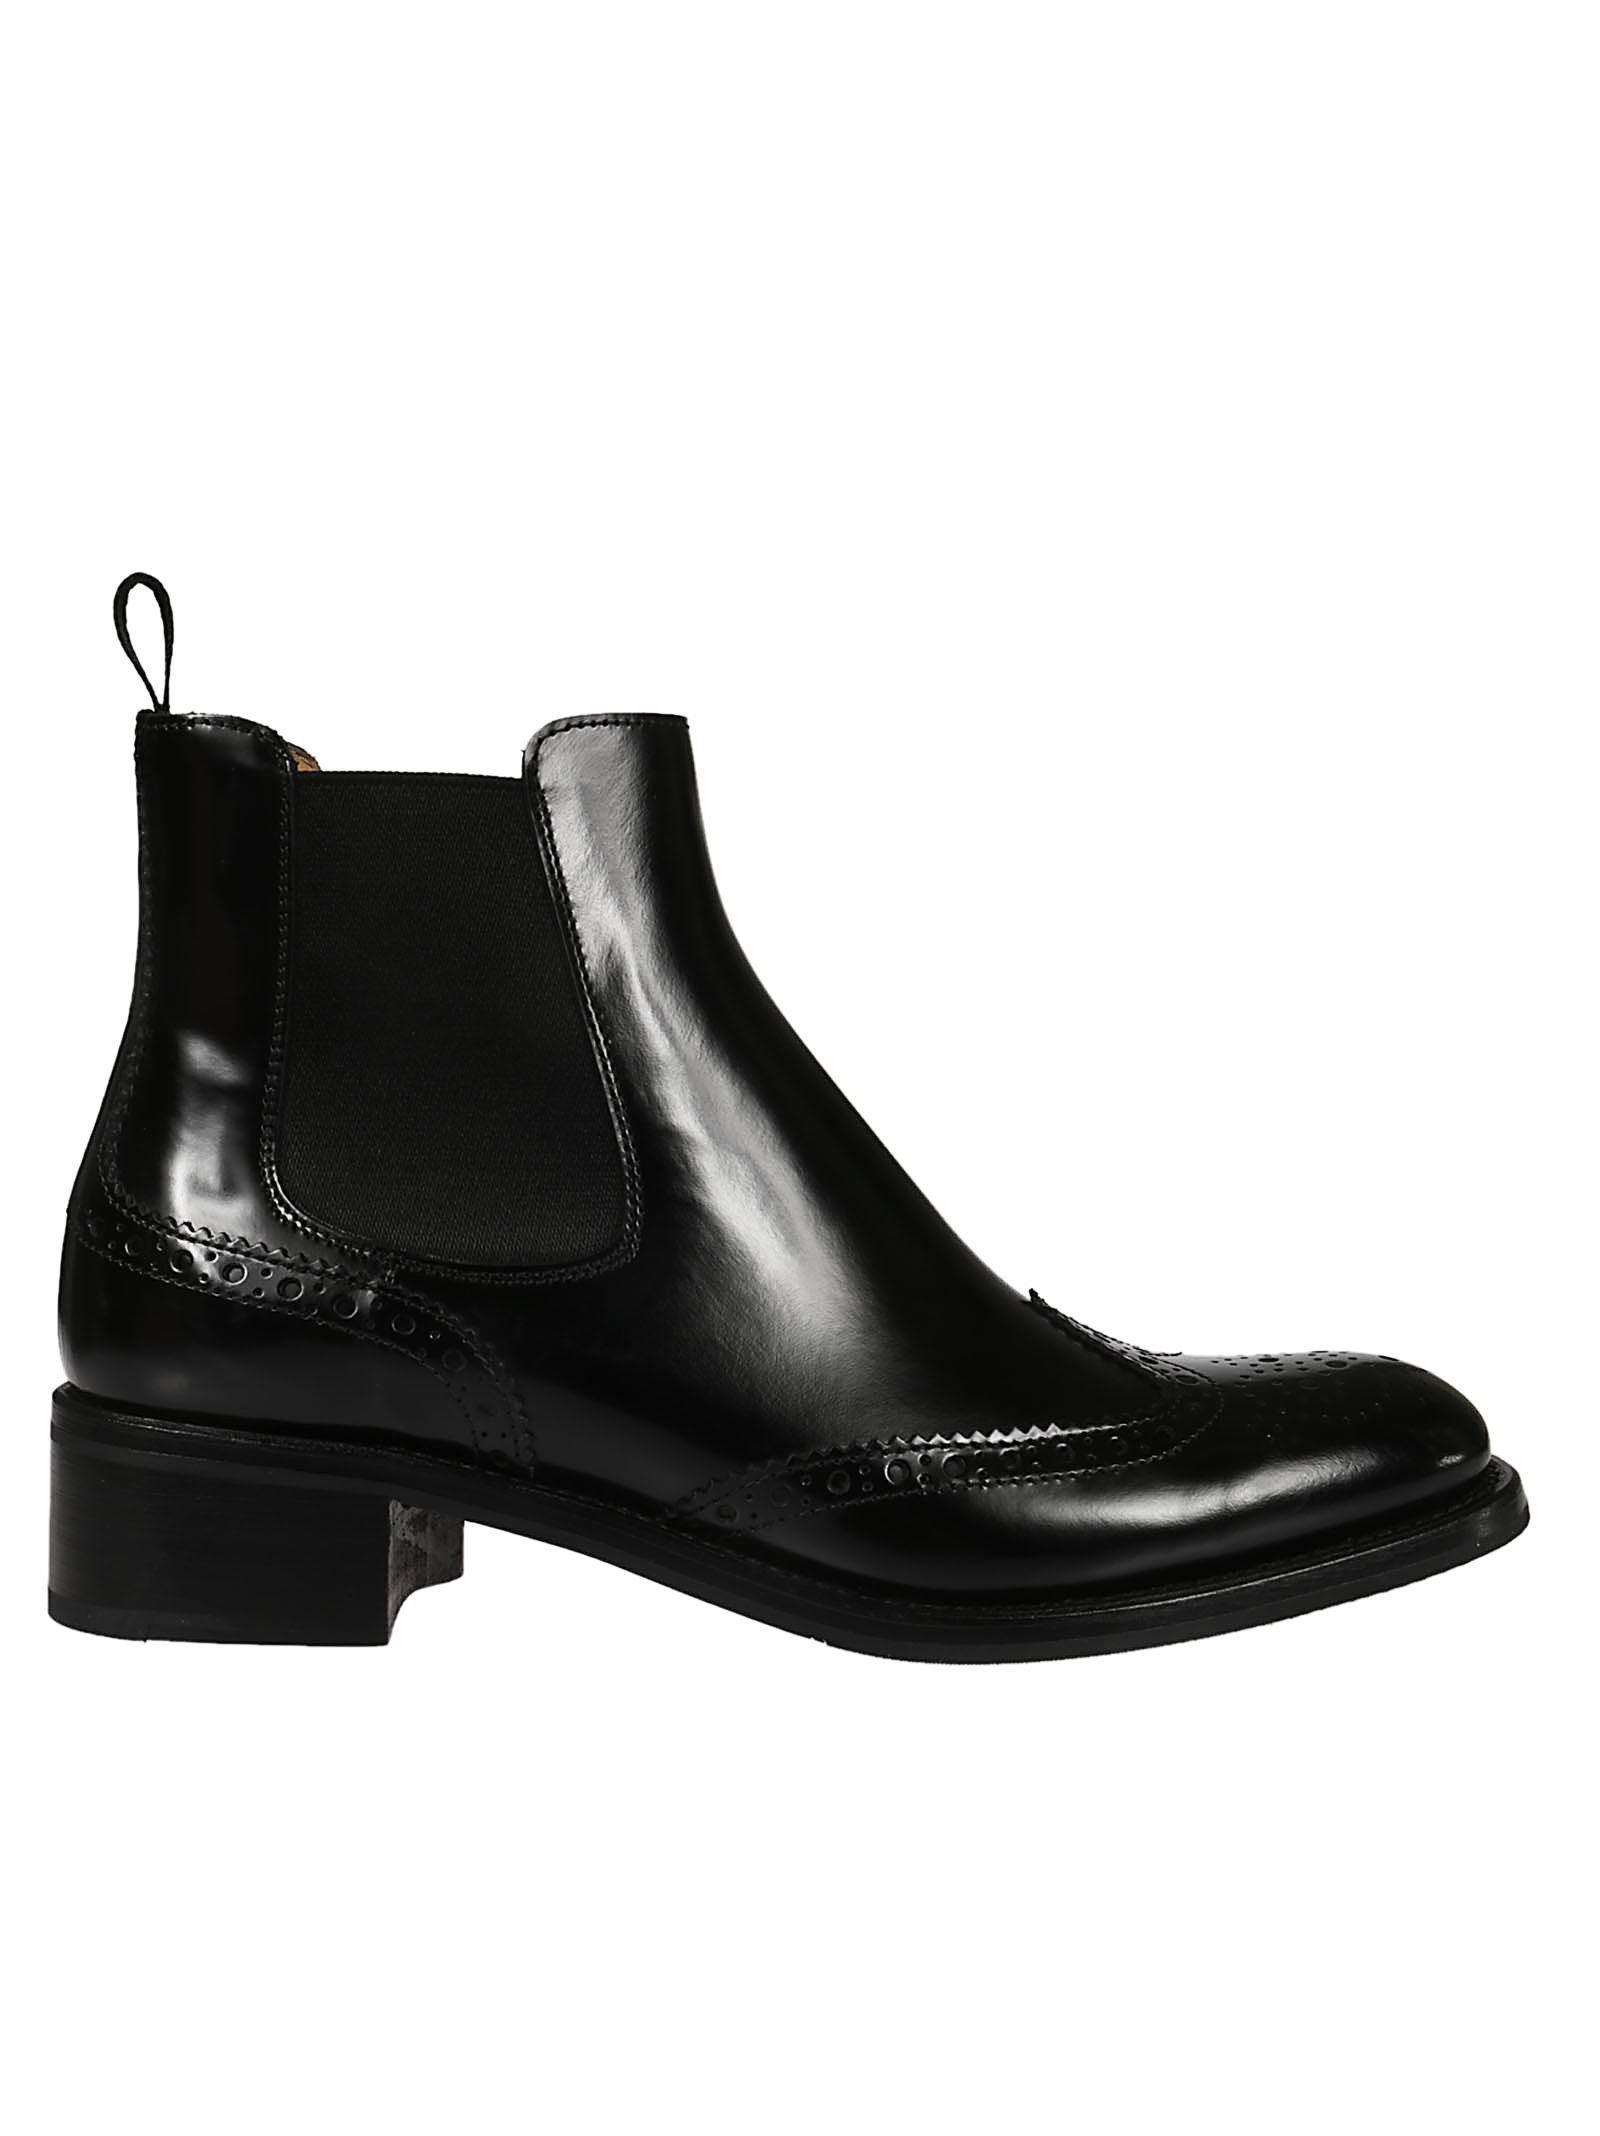 Church's PERFORATED ANKLE BOOTS